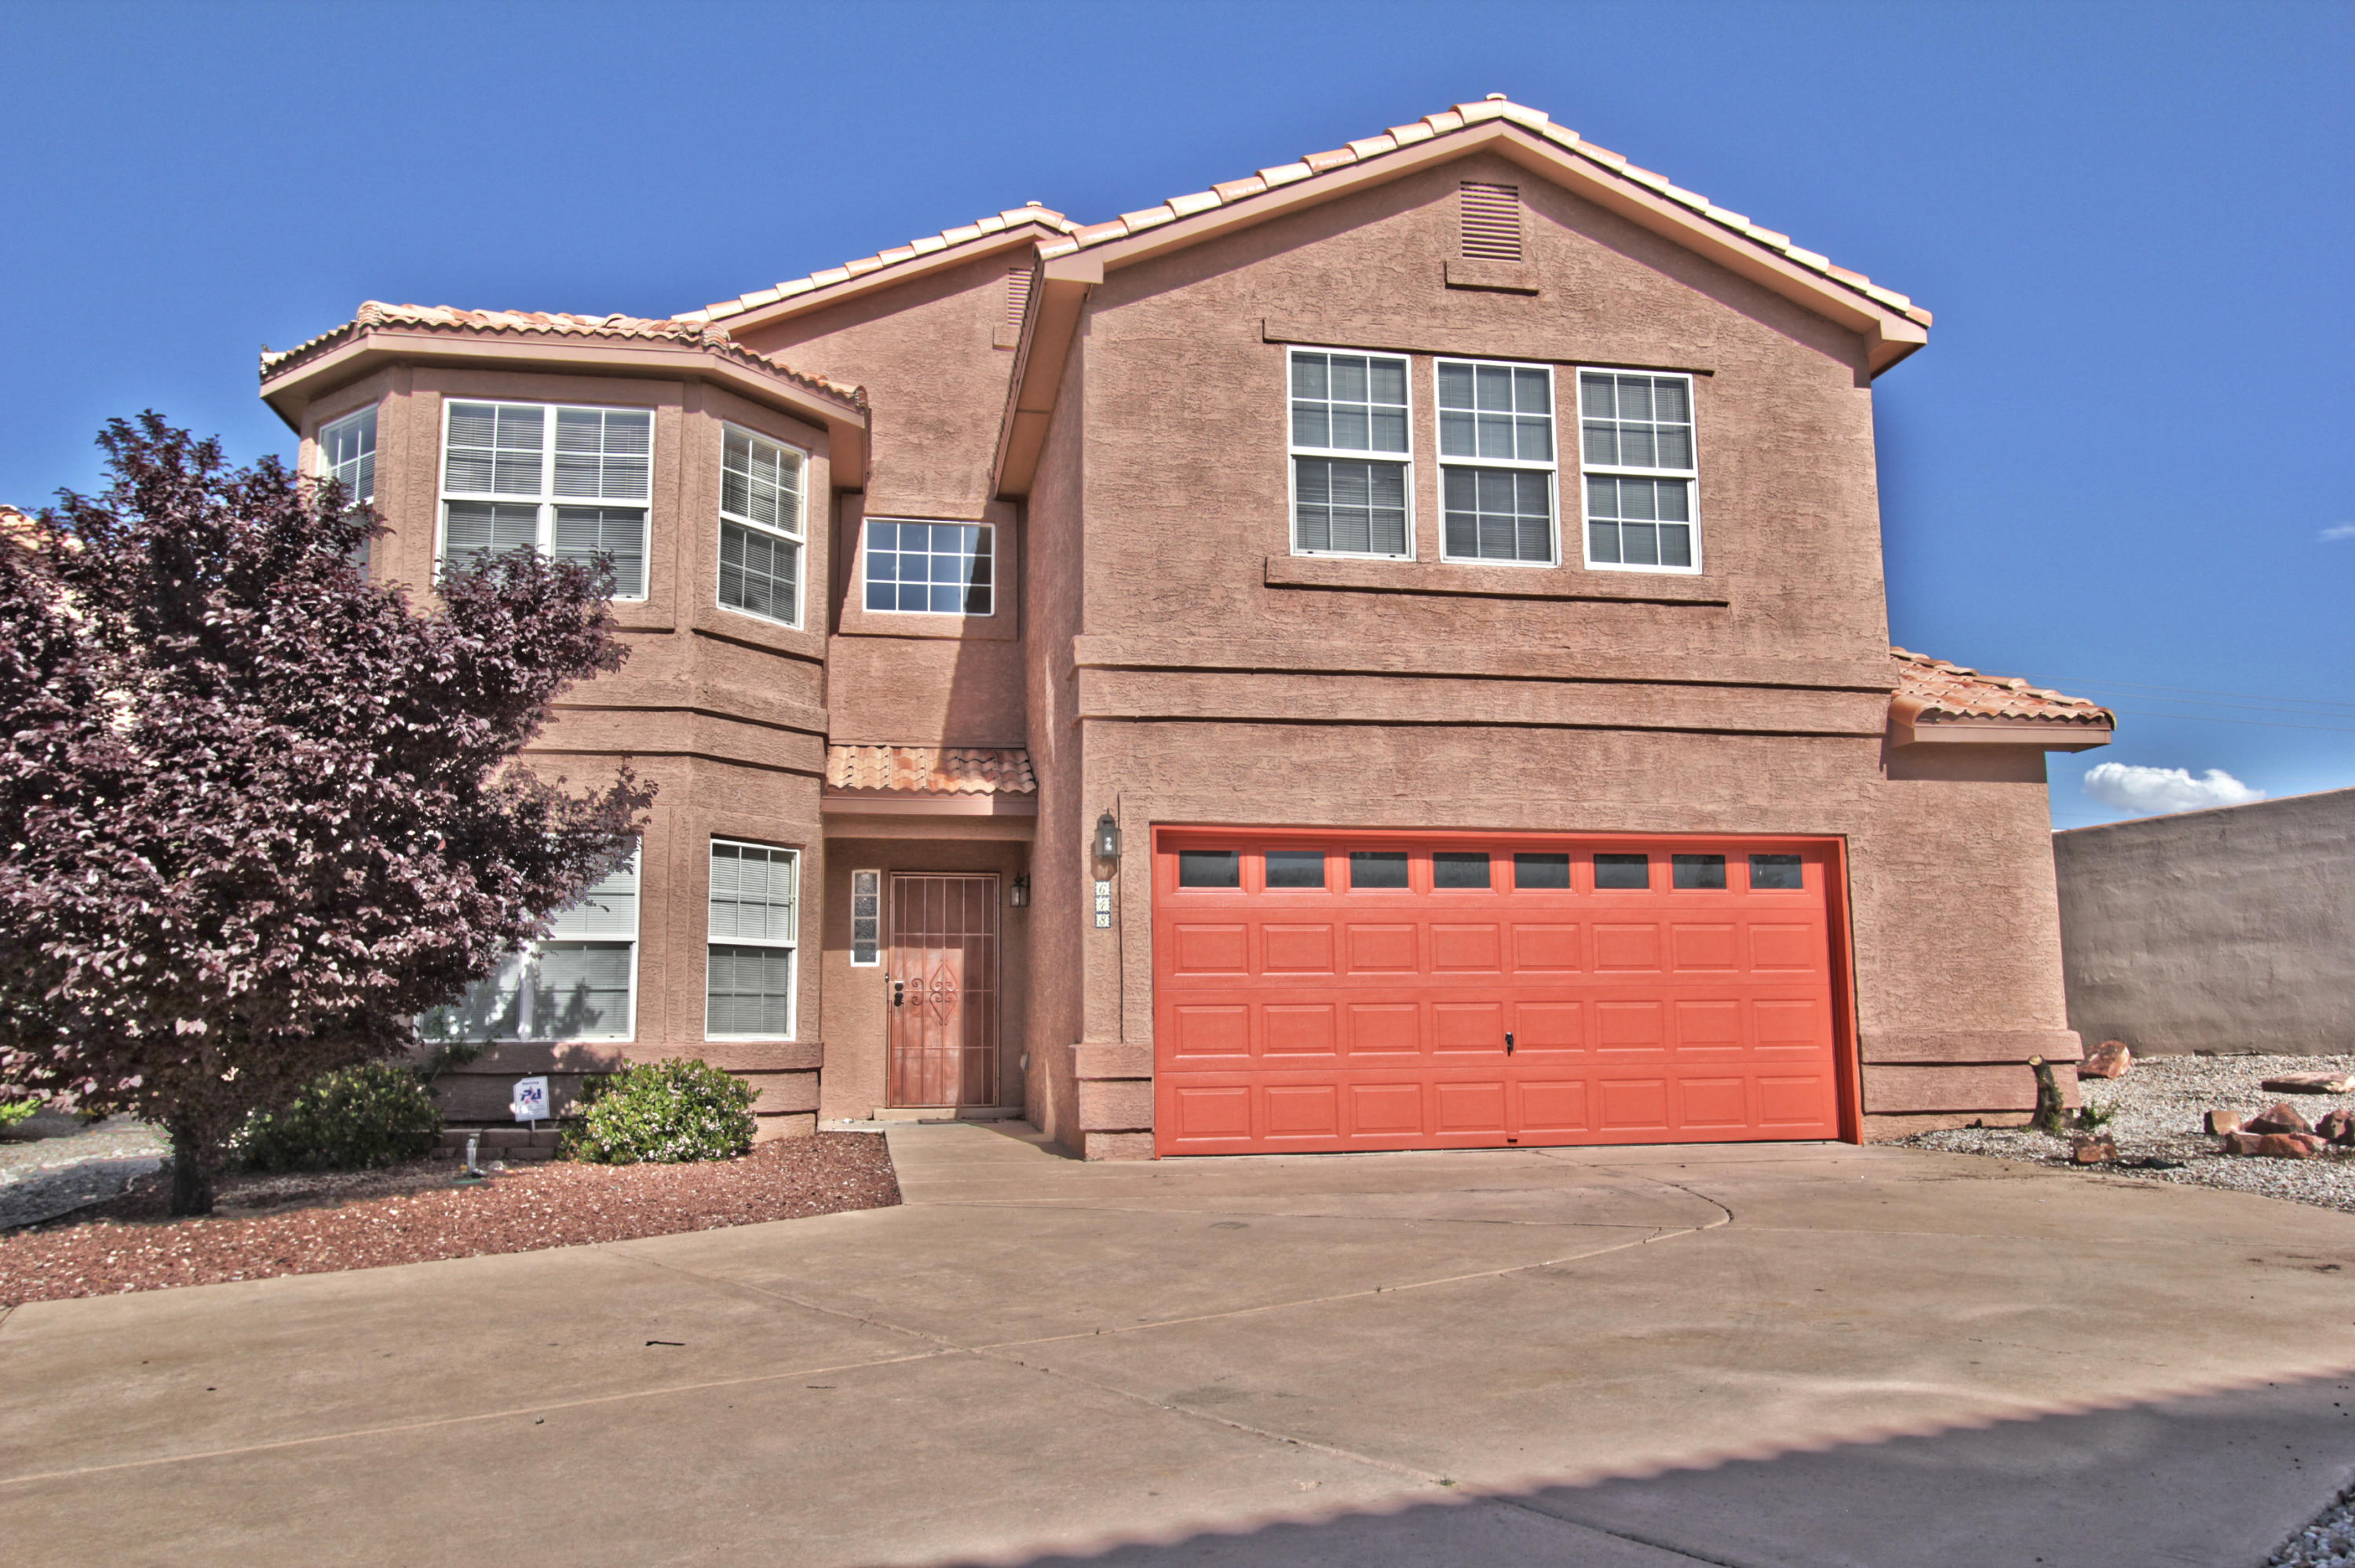 Welcome to the GATED community of Encanto Village community where homeowner's take pride in ownership.  Extra space on side yard with BACKYARD ACCESS. Large low maintenance front and  back yards. 5 bedrooms, 2 large living areas, and 2 dining areas.  Kitchen opens to dining and one living area with lots of storage, a large pantry, and island for extra cooking space.  PORCELAIN wood-like tile throughout with gorgeous wood stairs and landing, and newer carpet in bedrooms.   Enter the backyard through the sliding glass door and relax on the large covered patio with a gas stub-out.  Tiled roof, and amazing mountain views from the upstairs deck. Make your way through the french doors to the roomy master bedroom with a huge walk-in closet. The master bath and main bath offer private latrines